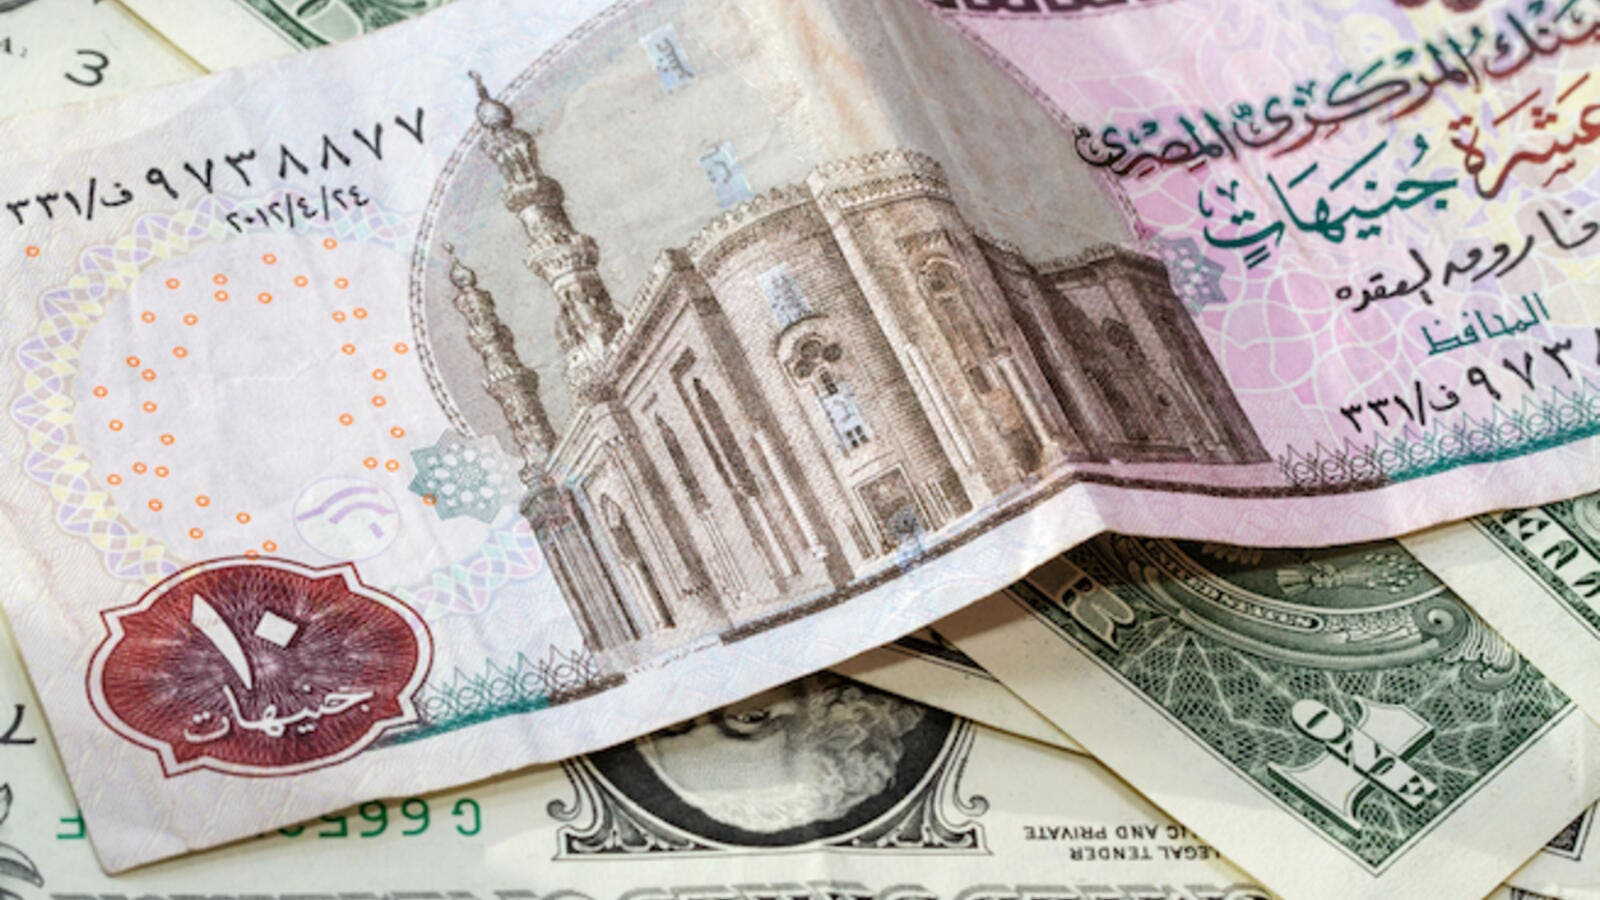 Egypt began setting a monthly customs exchange rate in January 2017, following the liberalization of its currency in November 2016. (Shutterstock)